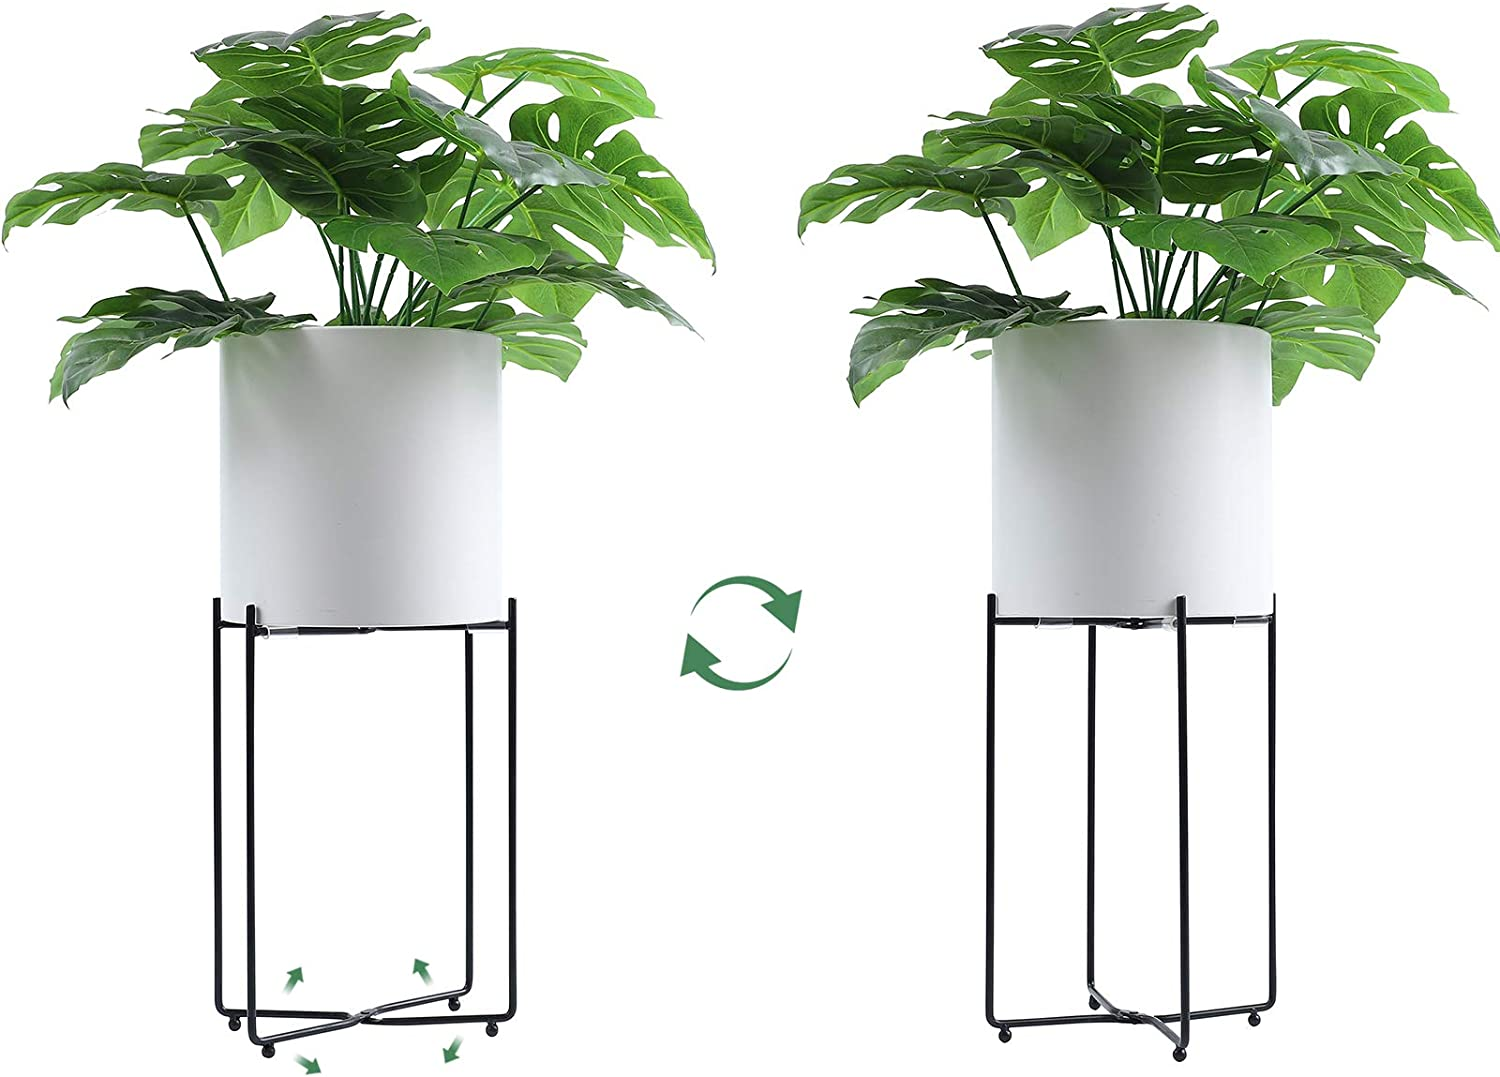 Indoor Plant Stand Adjustable Metal Flower Pot Stand, Mid-Century Modern Plant Stand Display Stand, Suitable for Home, Office, Garden, Terrace, Lawn, Yard, Library, Restaurant,